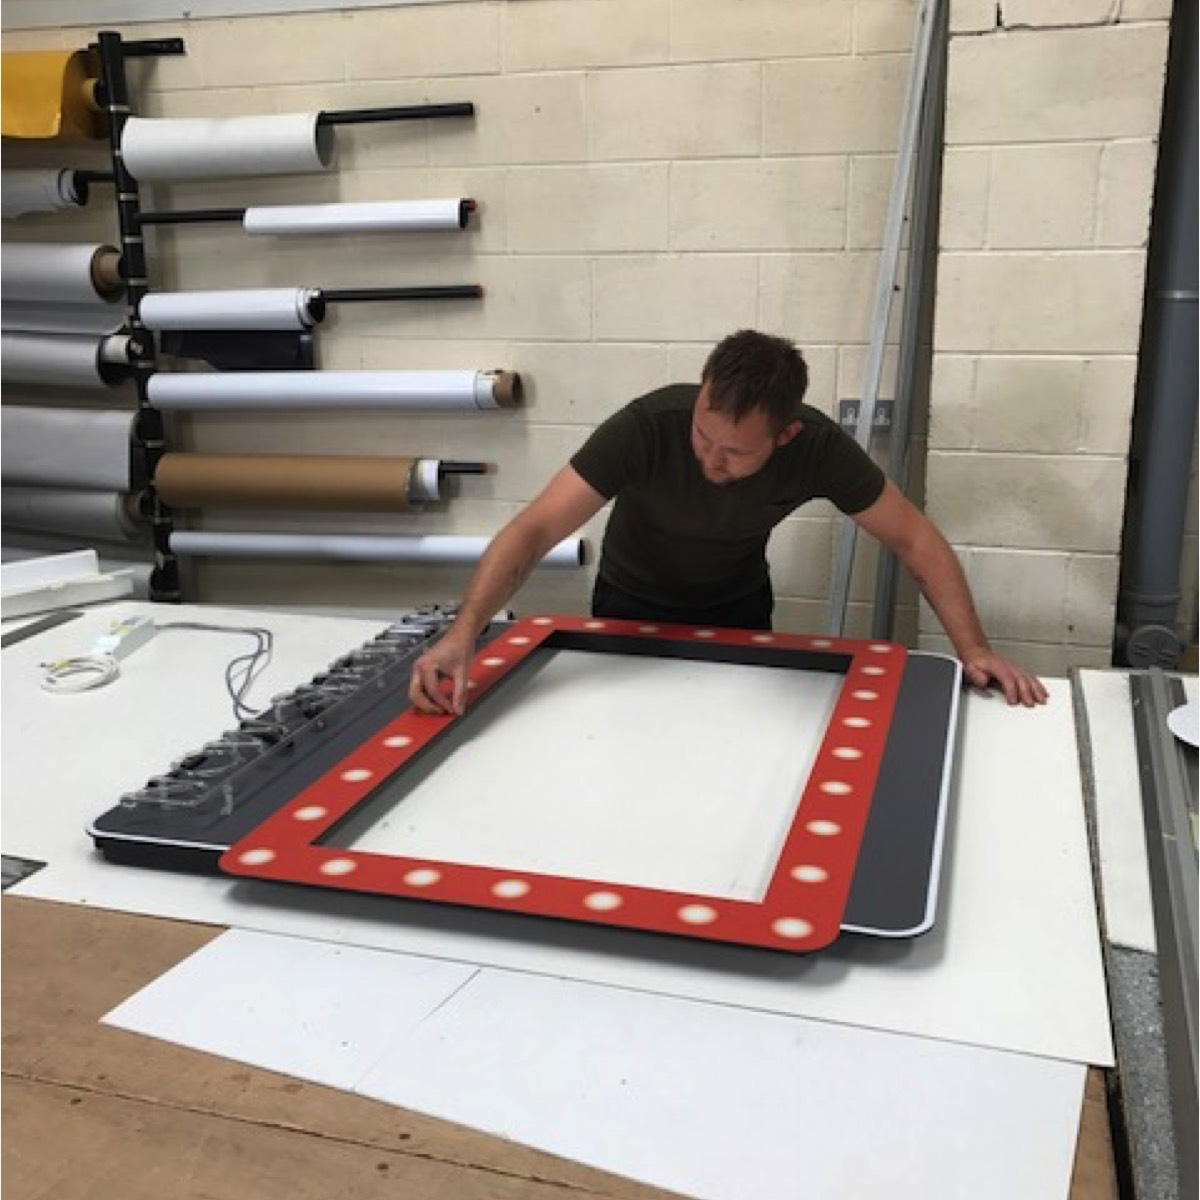 neon sign frame being manufactured